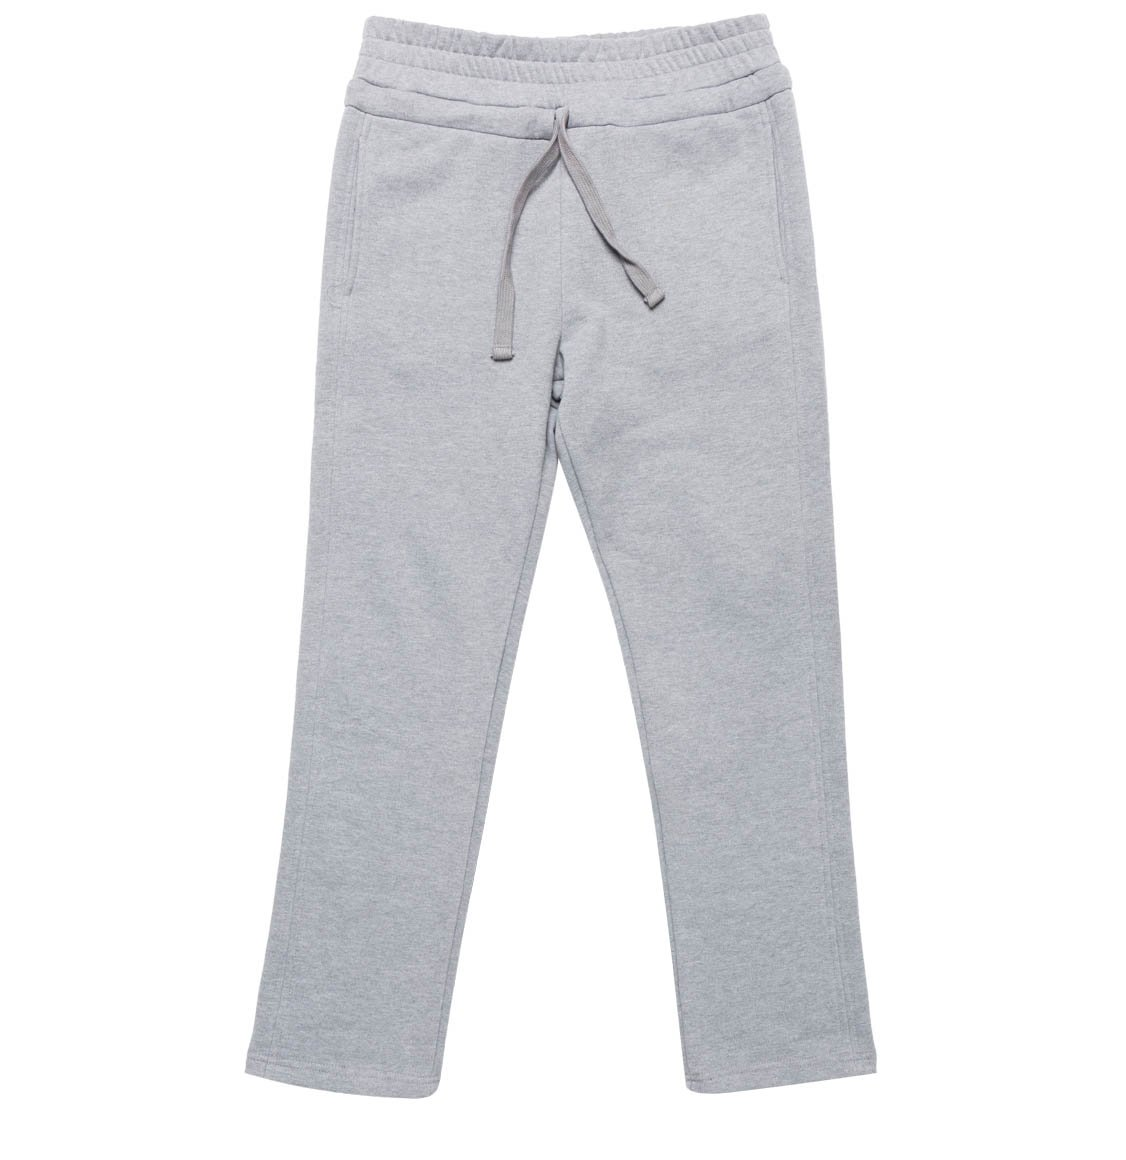 The Project Garments Regular Fit Cotton Drawstring Sweatpants Melange Grey